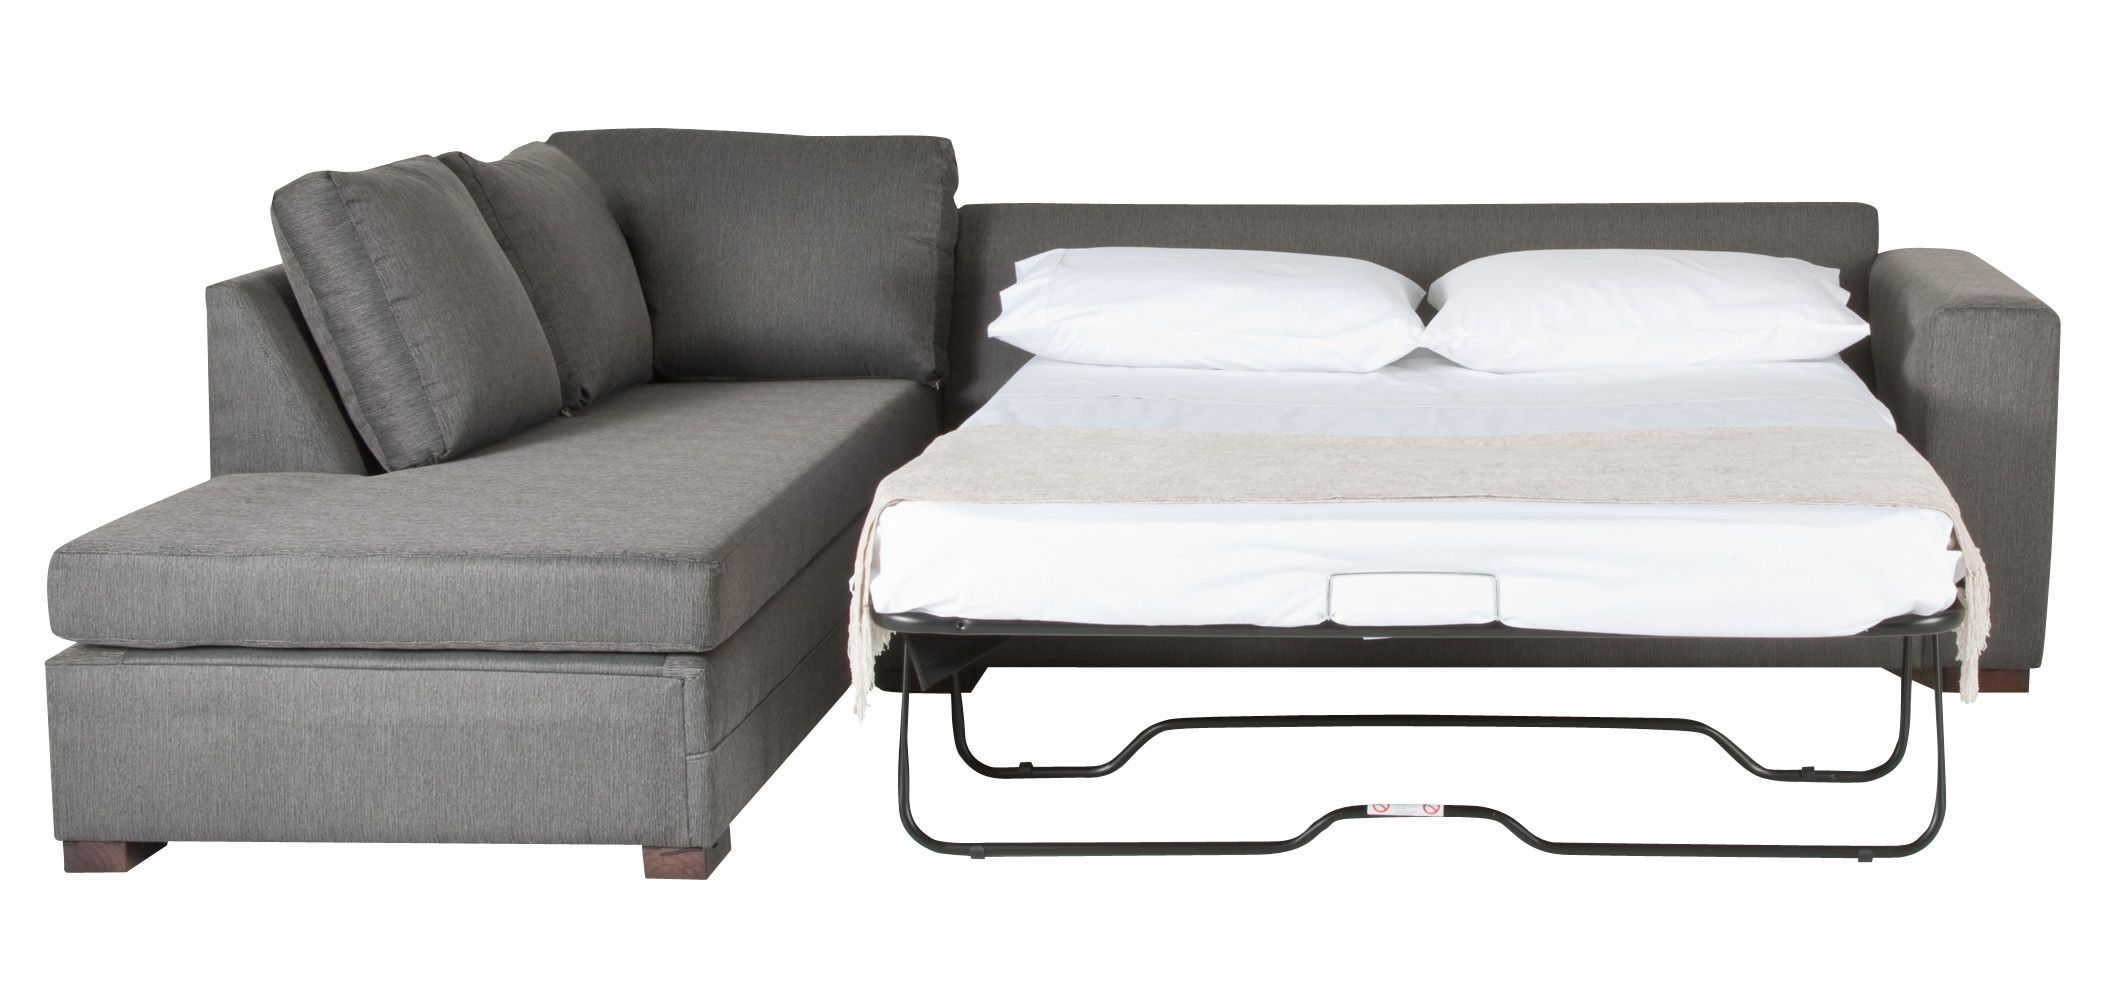 Consumer Reports Best Sofa Beds